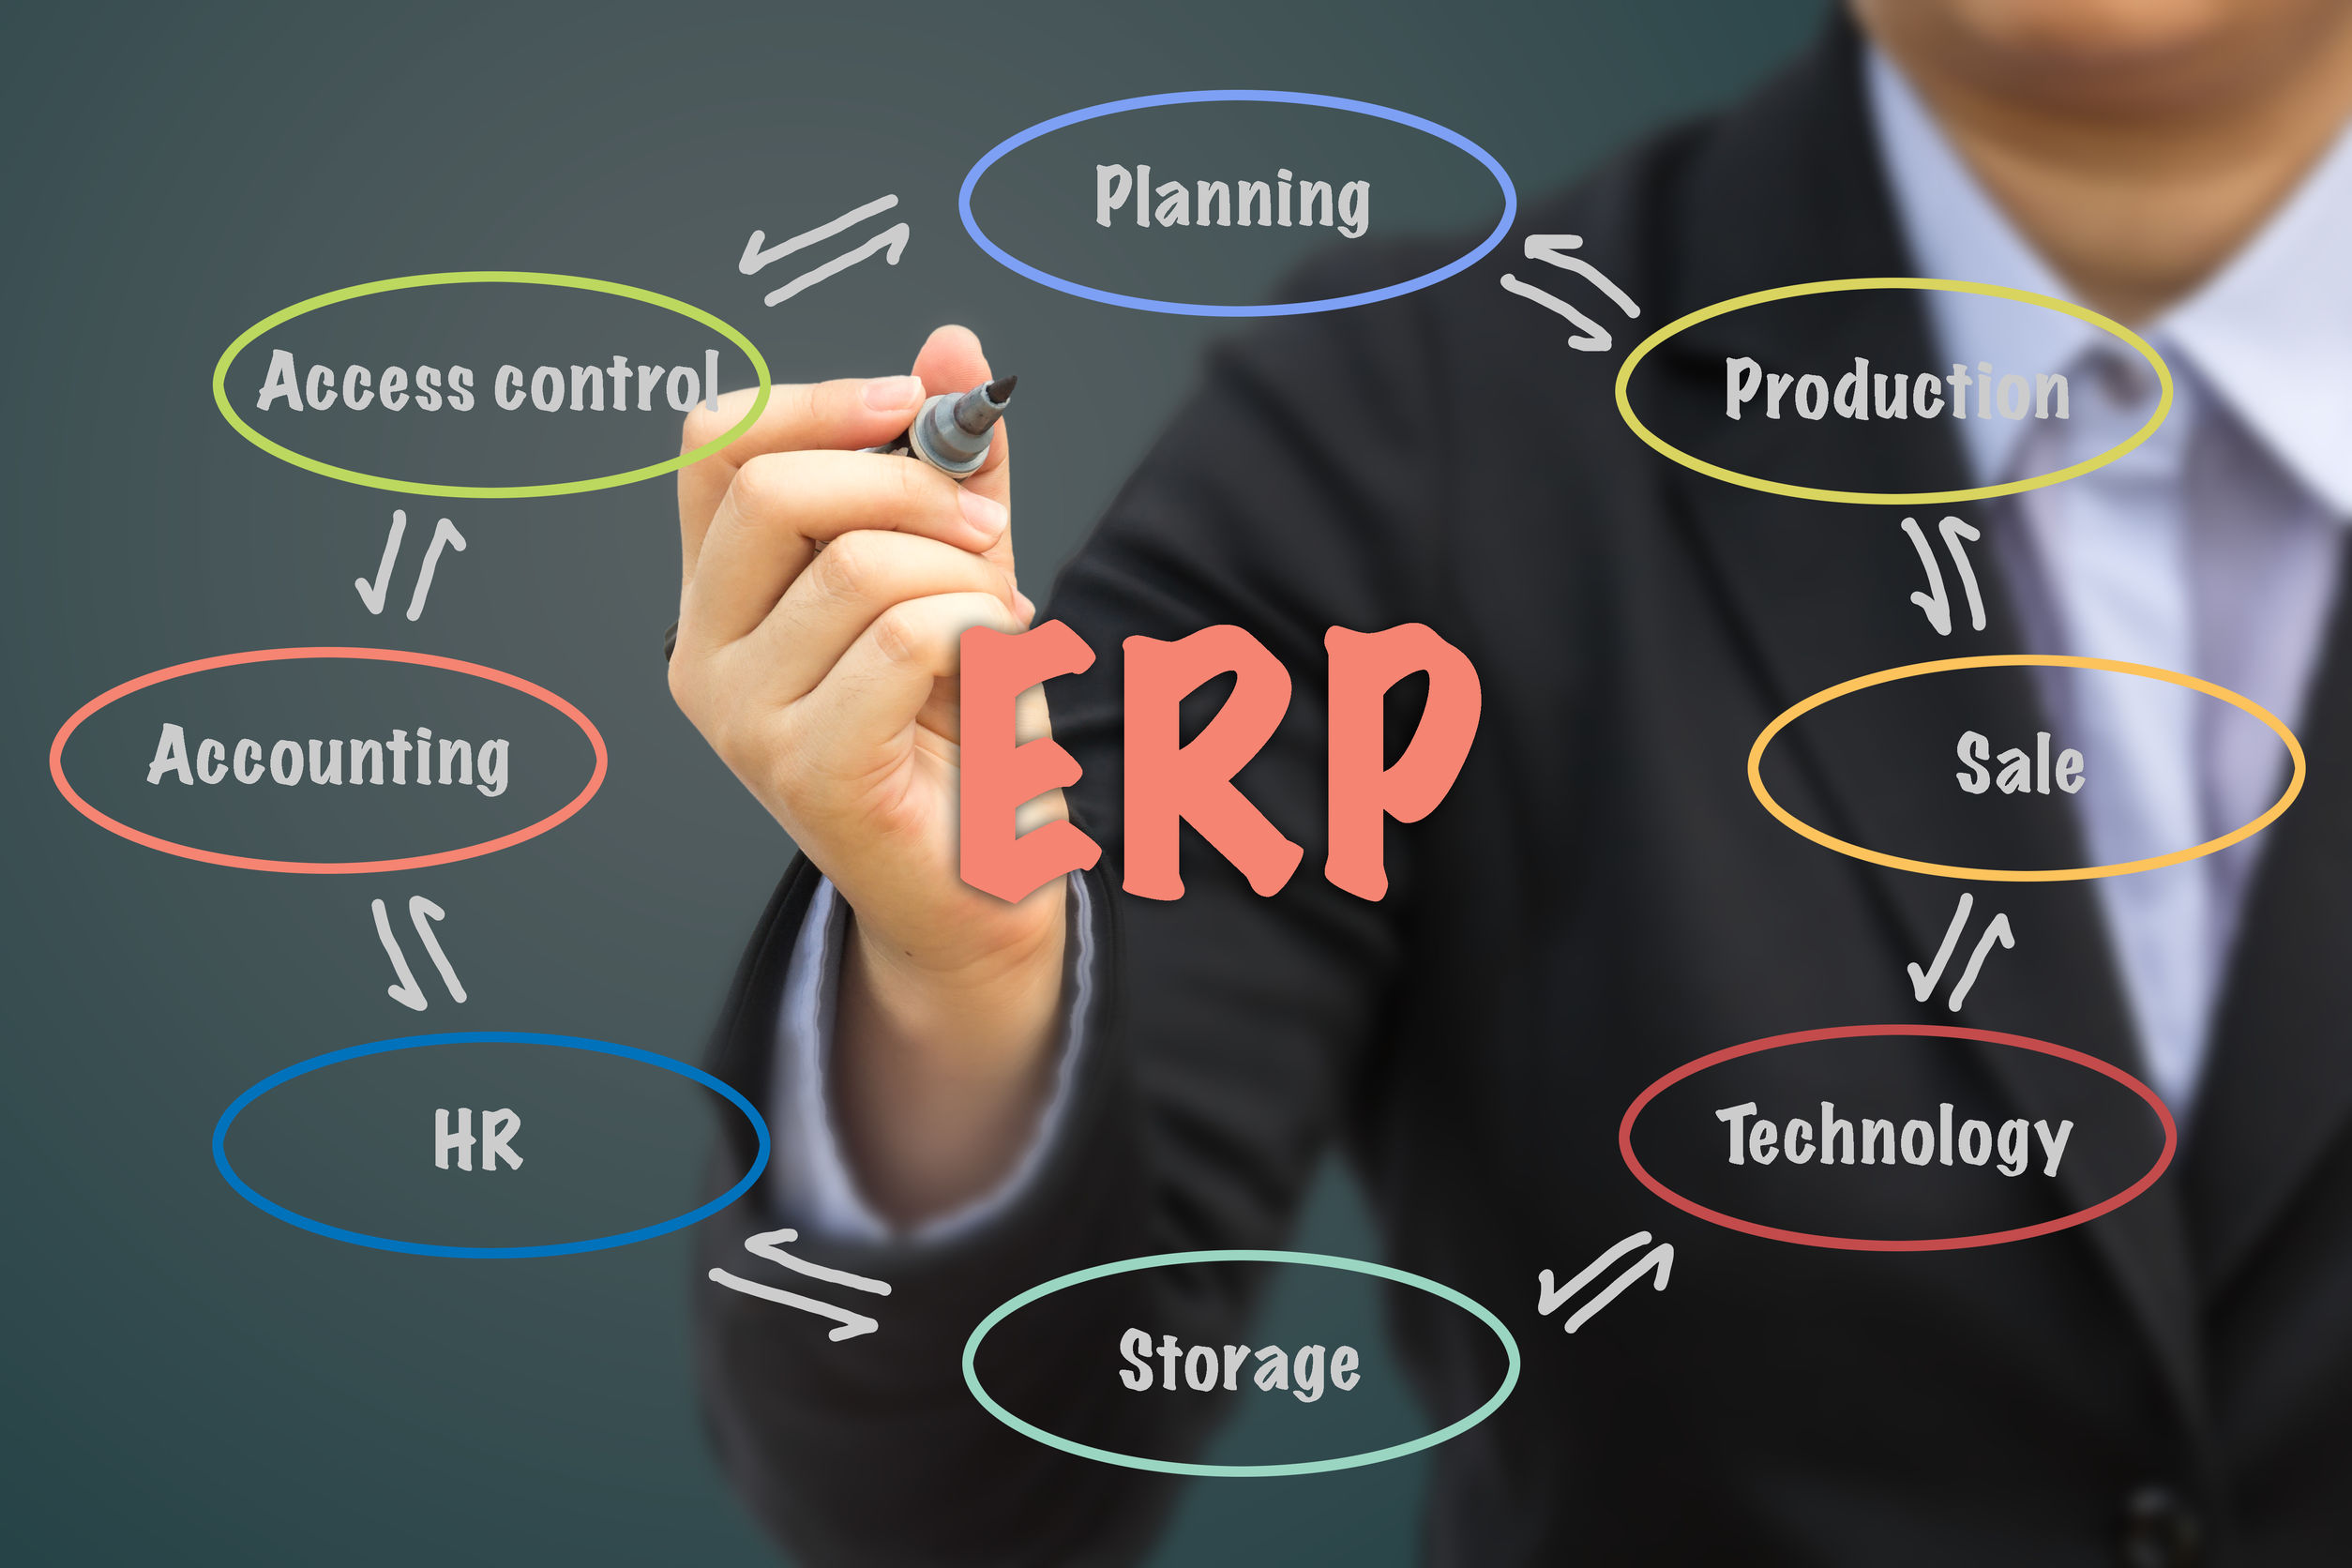 Contemplating an ERP? Consider These 6 Factors When Comparing Vendors